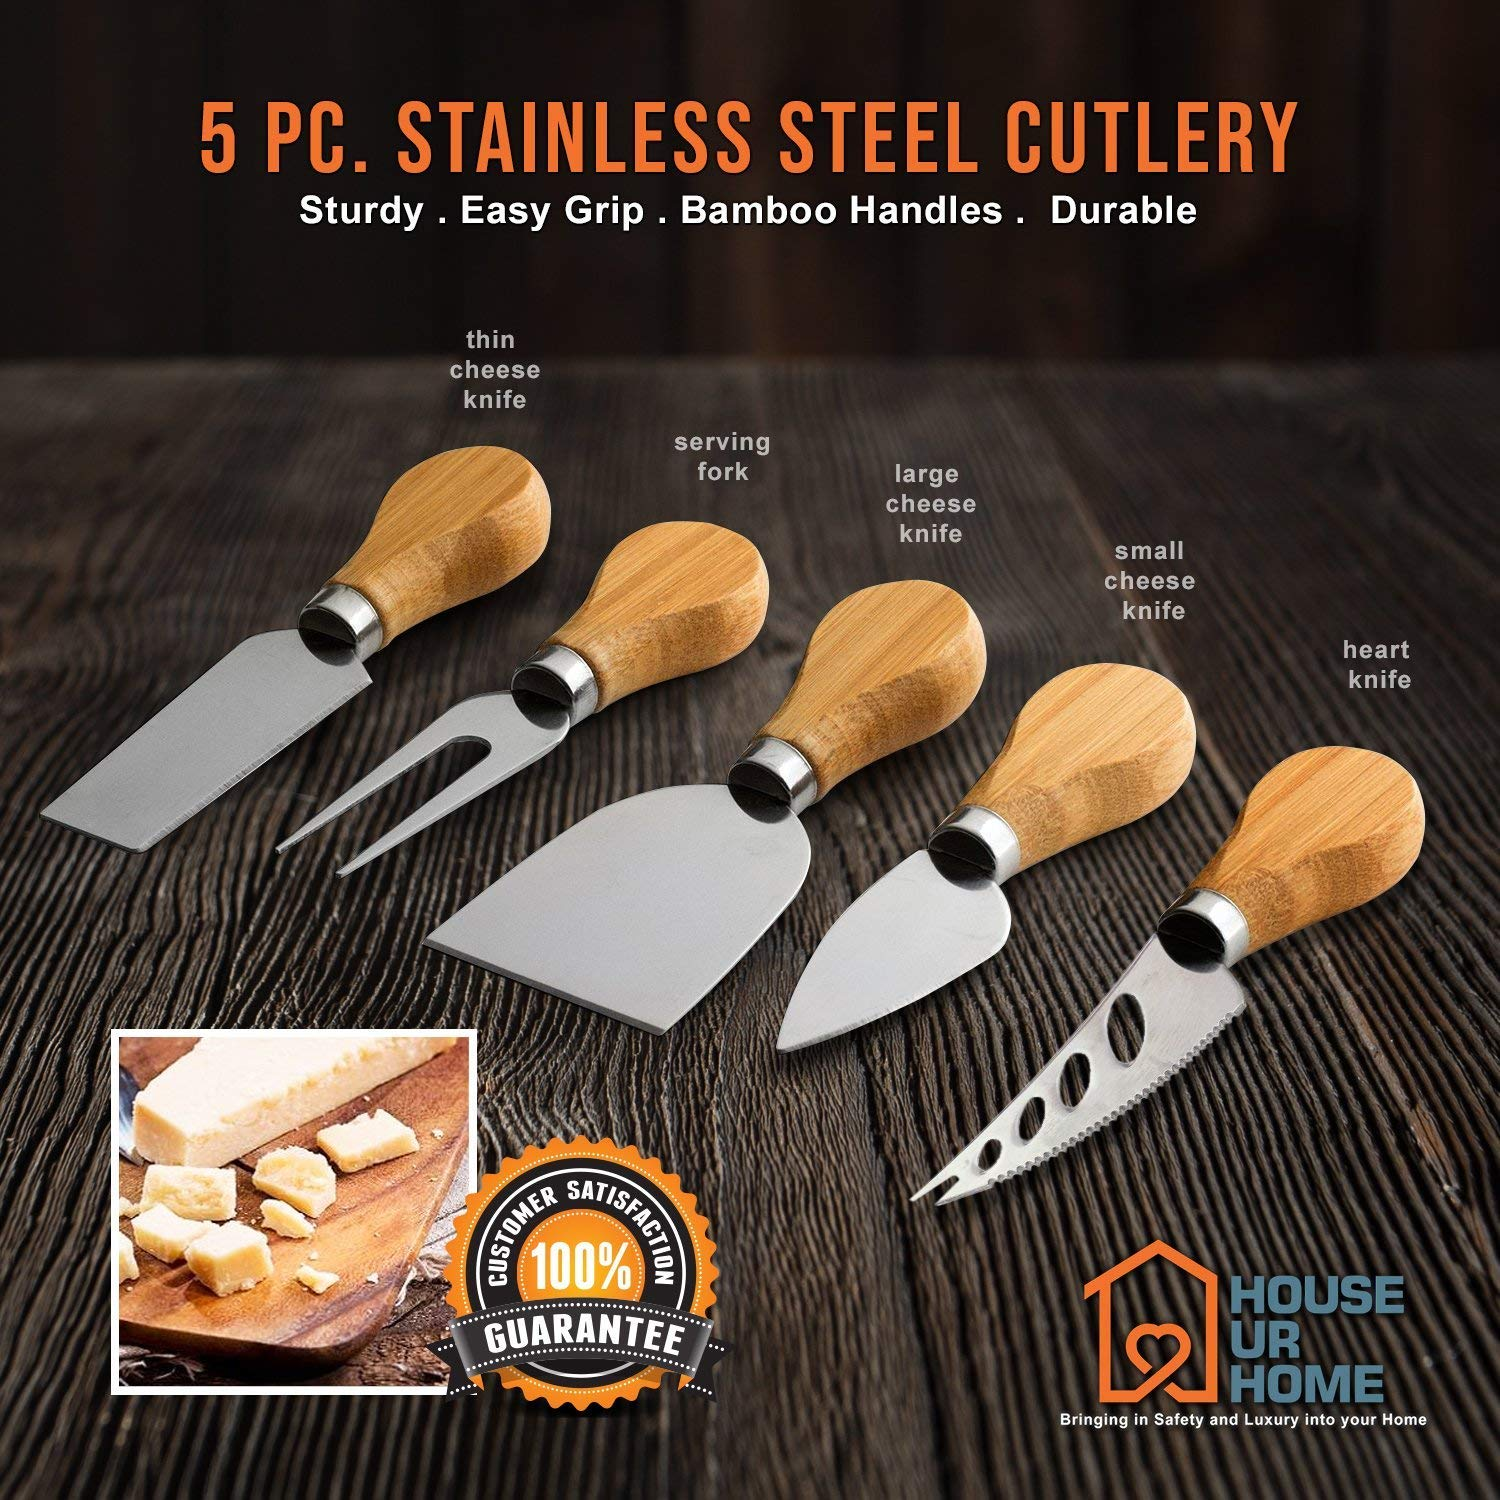 Cheese Knife And Marker Set, 5 Cutlery Knives Stainless Steel Bamboo Handles, 4 Cheese Board Labels Made Of Natural Black Slate Includes 2-Chalk Markers.Gift For All Occasions Upgrade By House Ur Home by House Ur Home (Image #3)